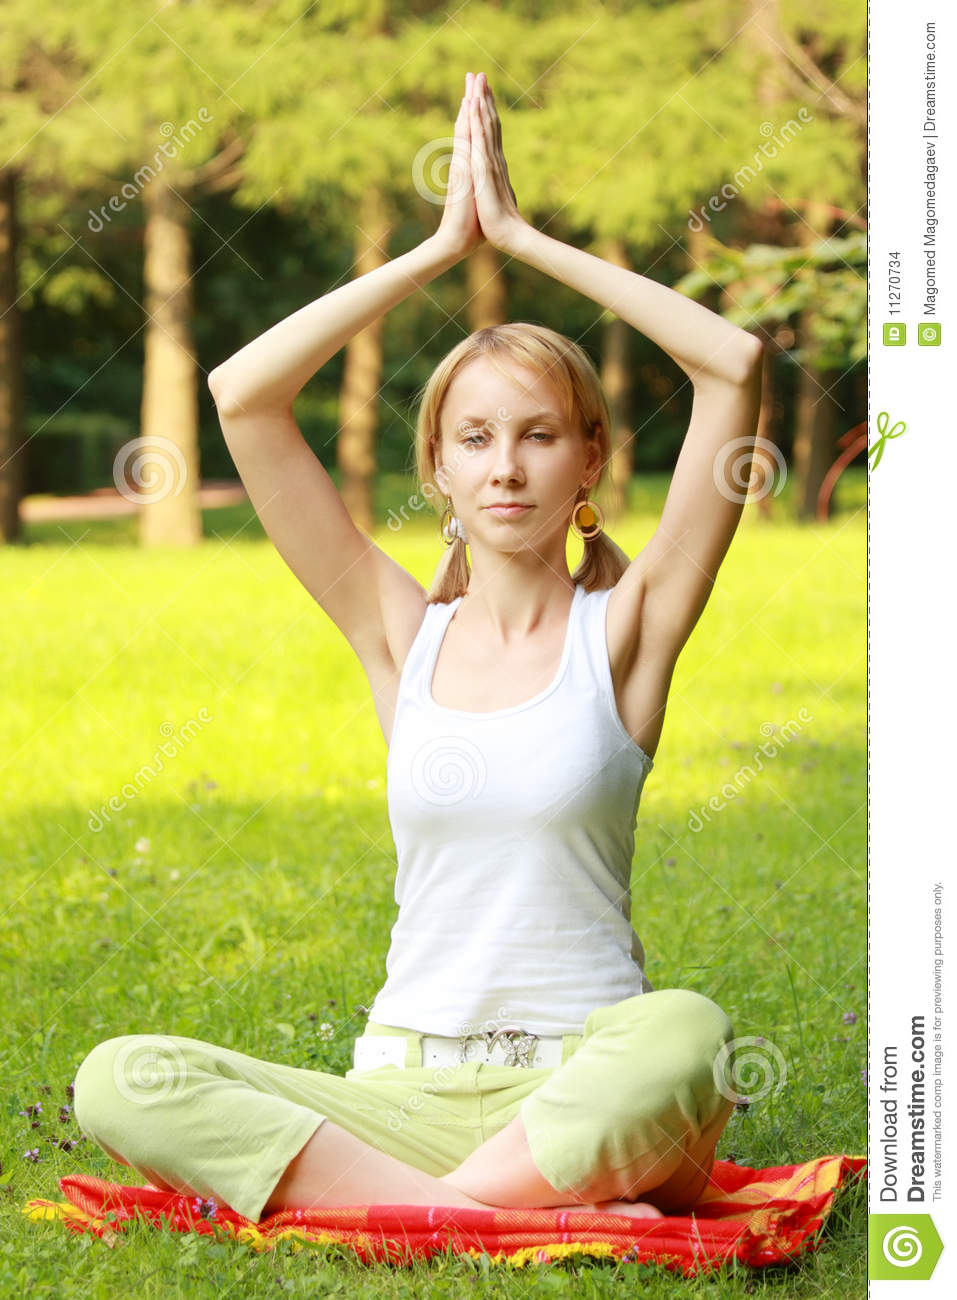 More similar stock images of relaxed blonde in yoga pose